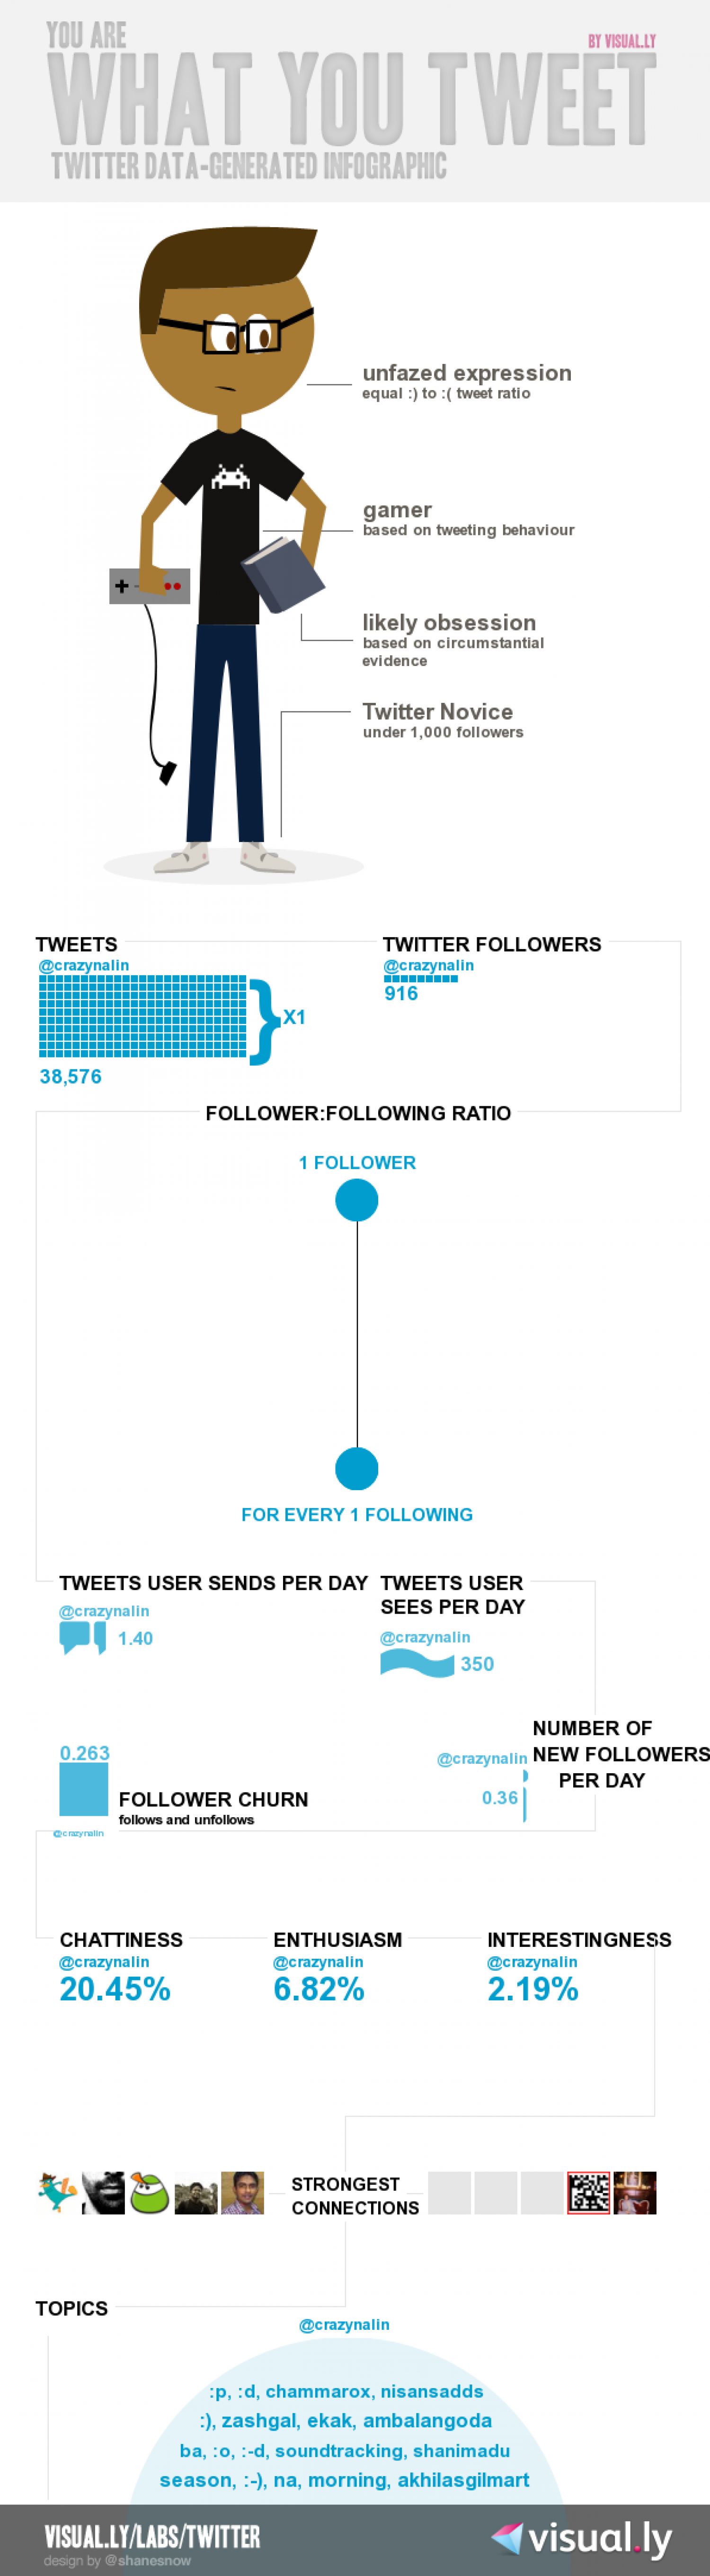 What @CrazyNalin tweets  Infographic